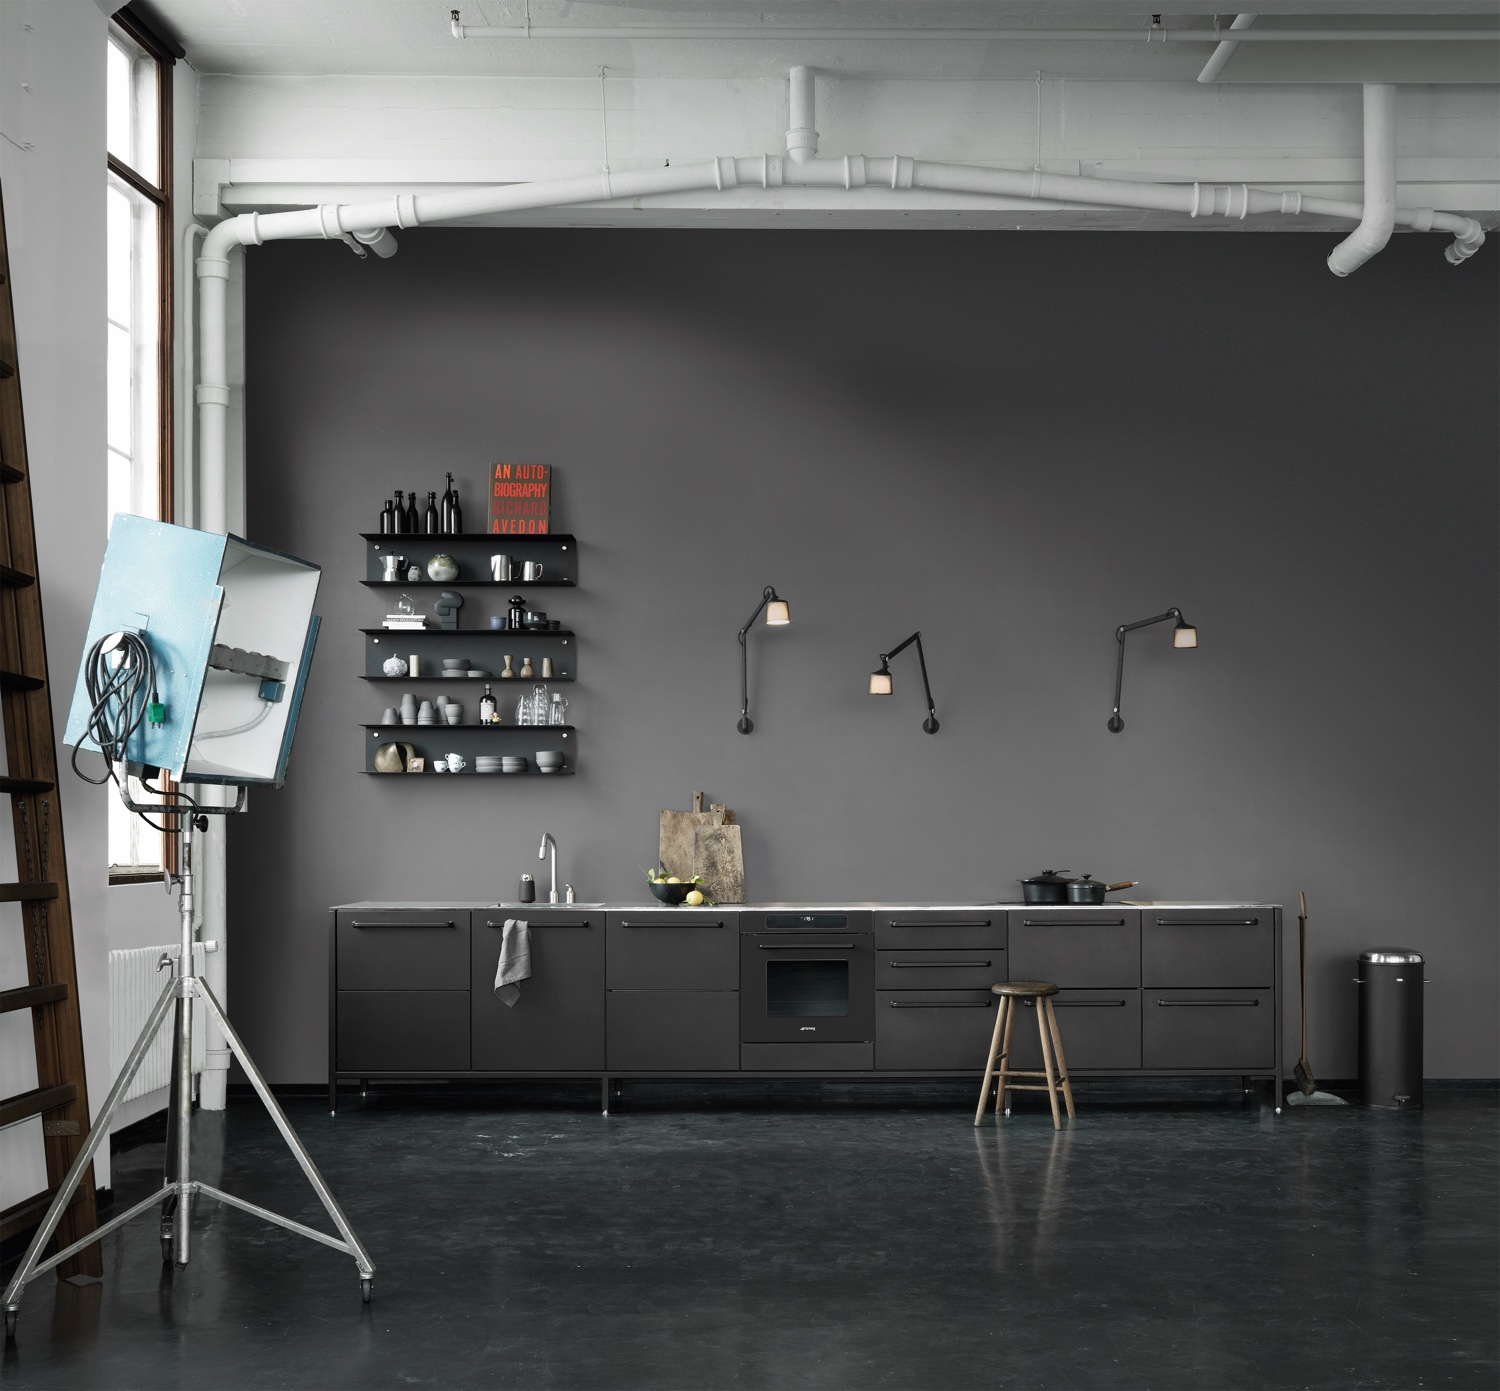 Vipp kitchen inspiration in Copenhagen. Image © Vipp.